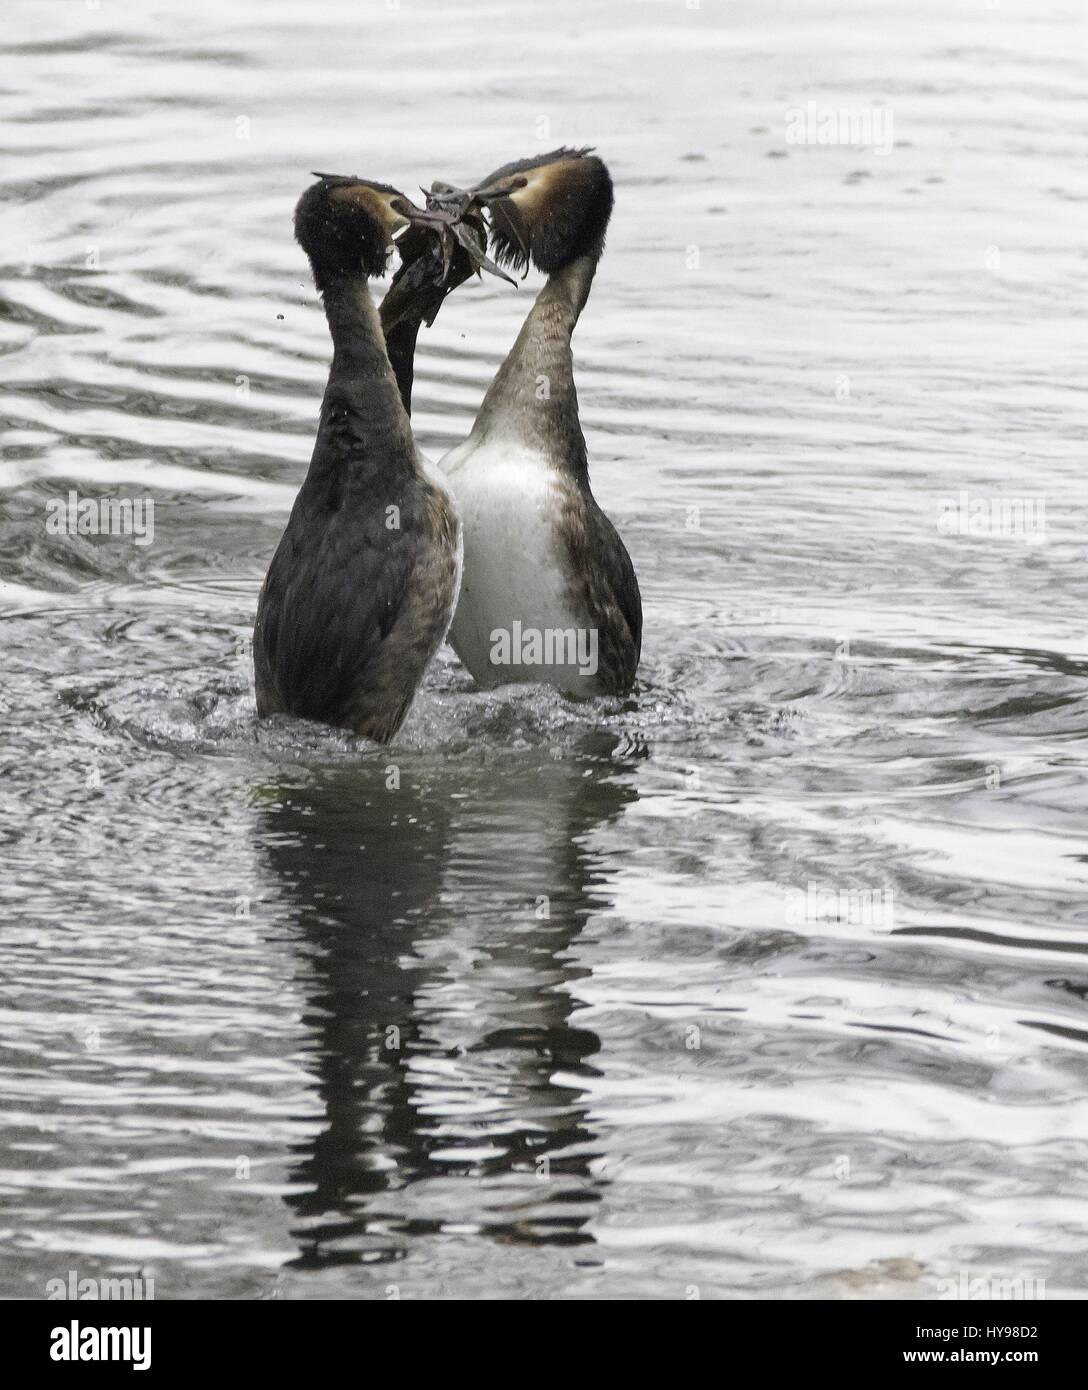 Great Crested Grebes with nesting material in display, february 2017 | usage worldwide - Stock Image